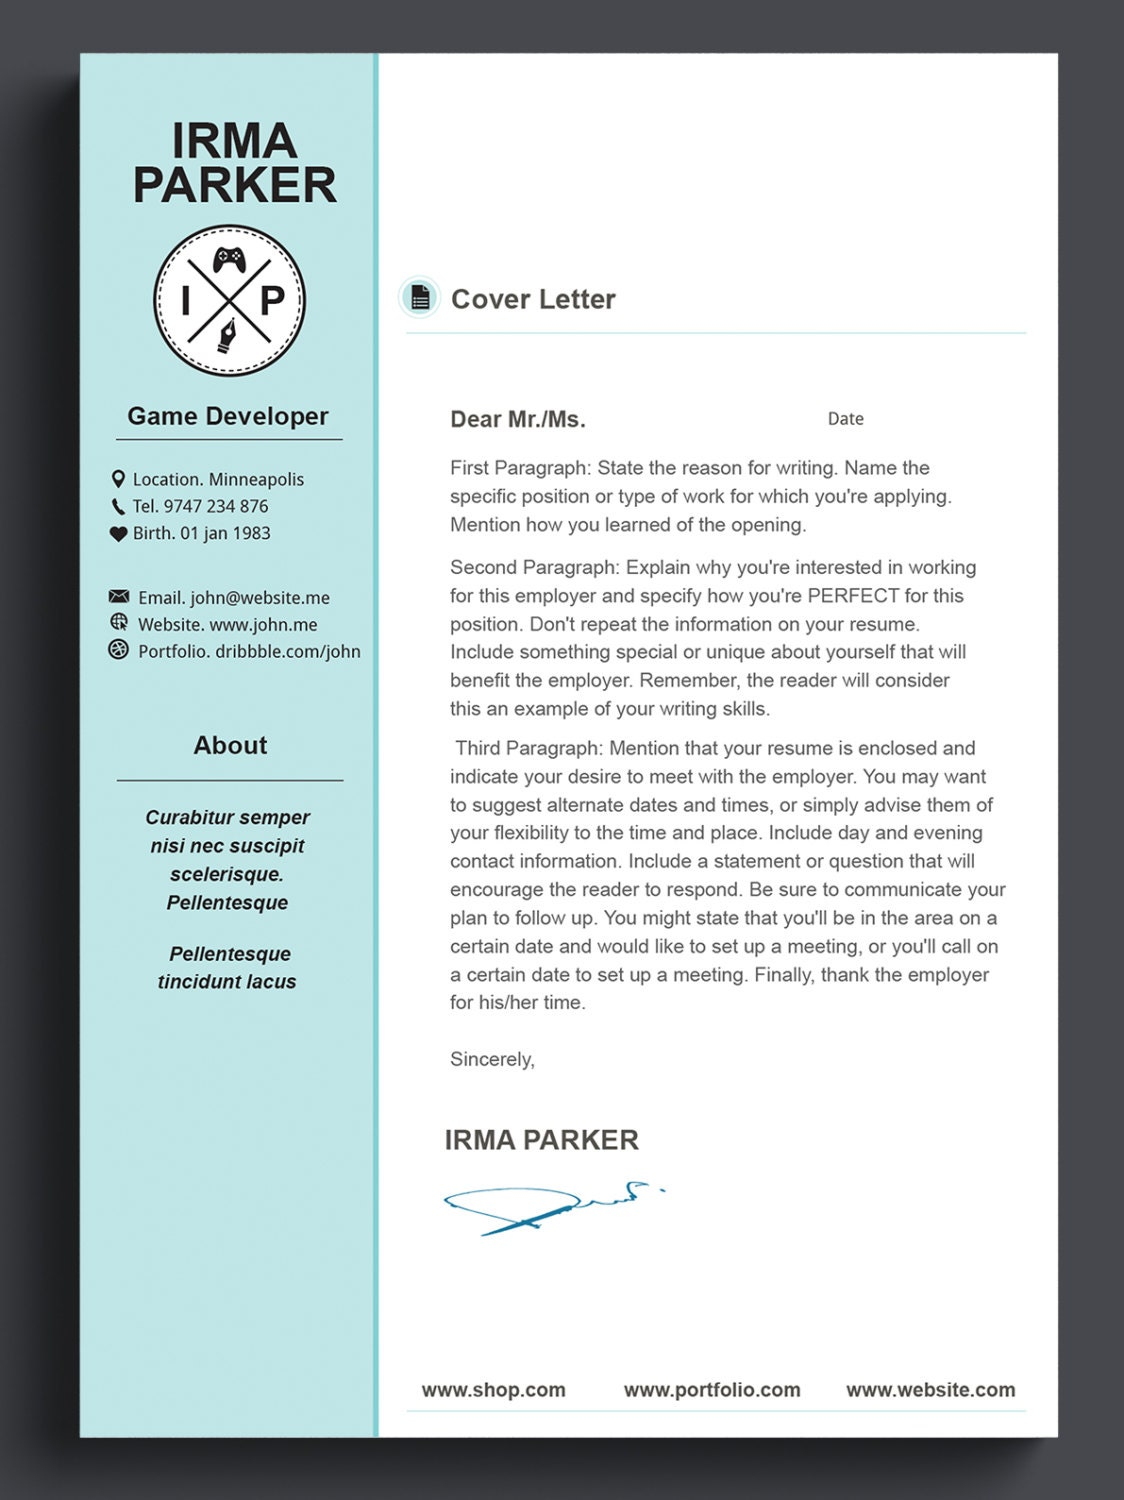 custom resume template cv template photoshop resume by 41bus